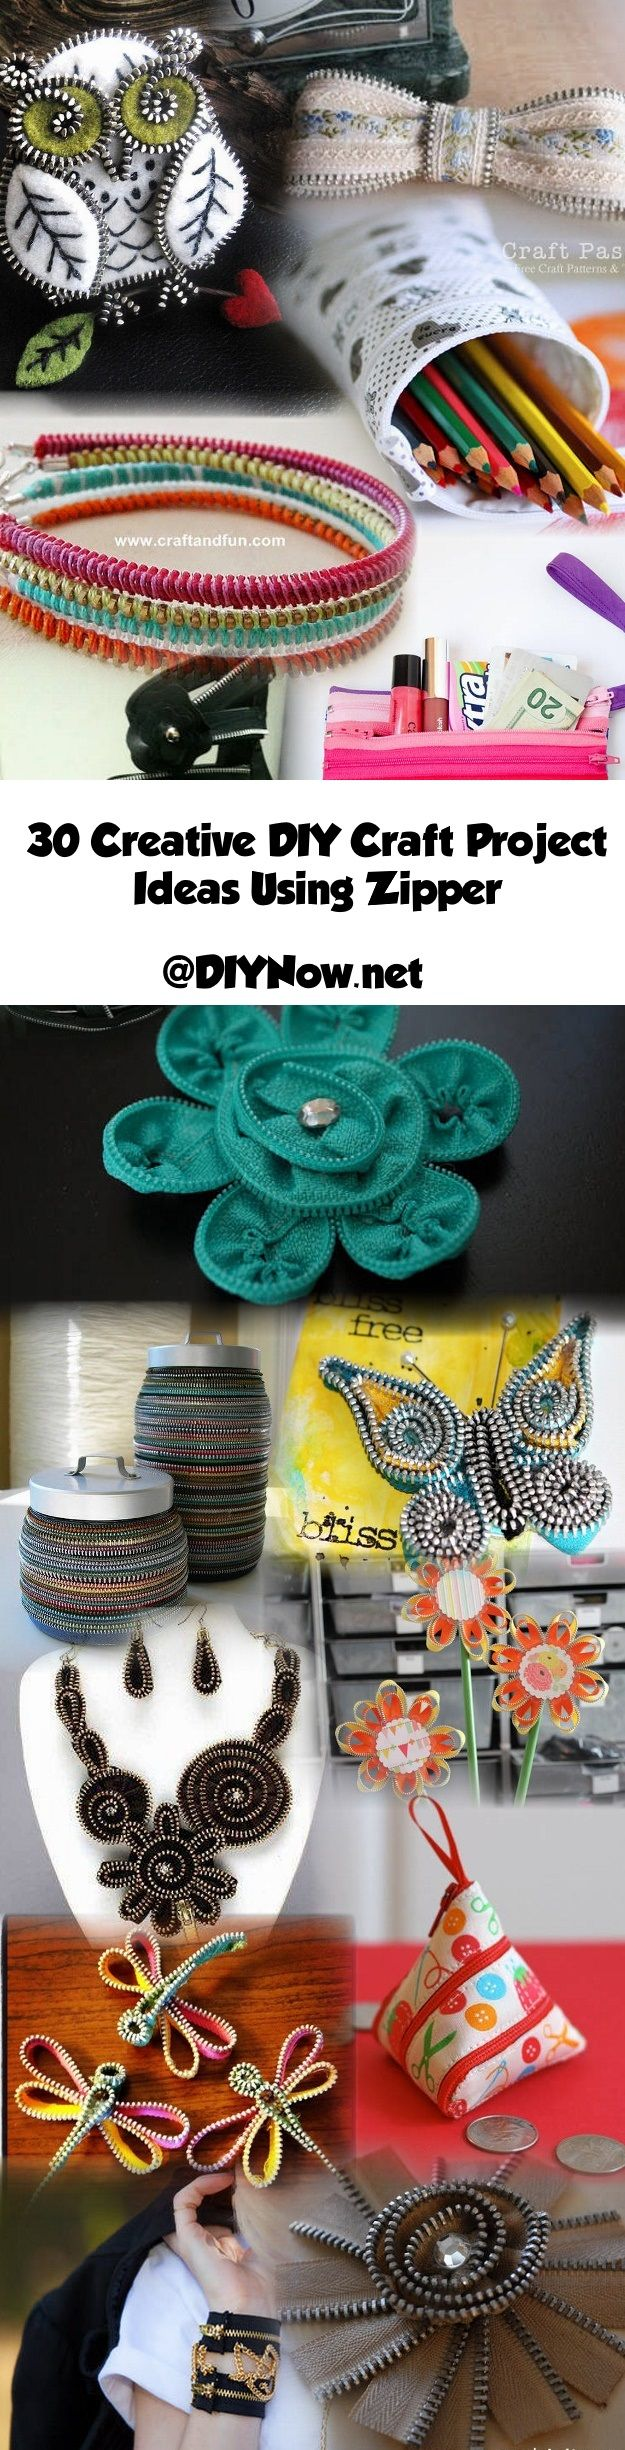 30 Creative DIY Craft Project Ideas Using Zipper